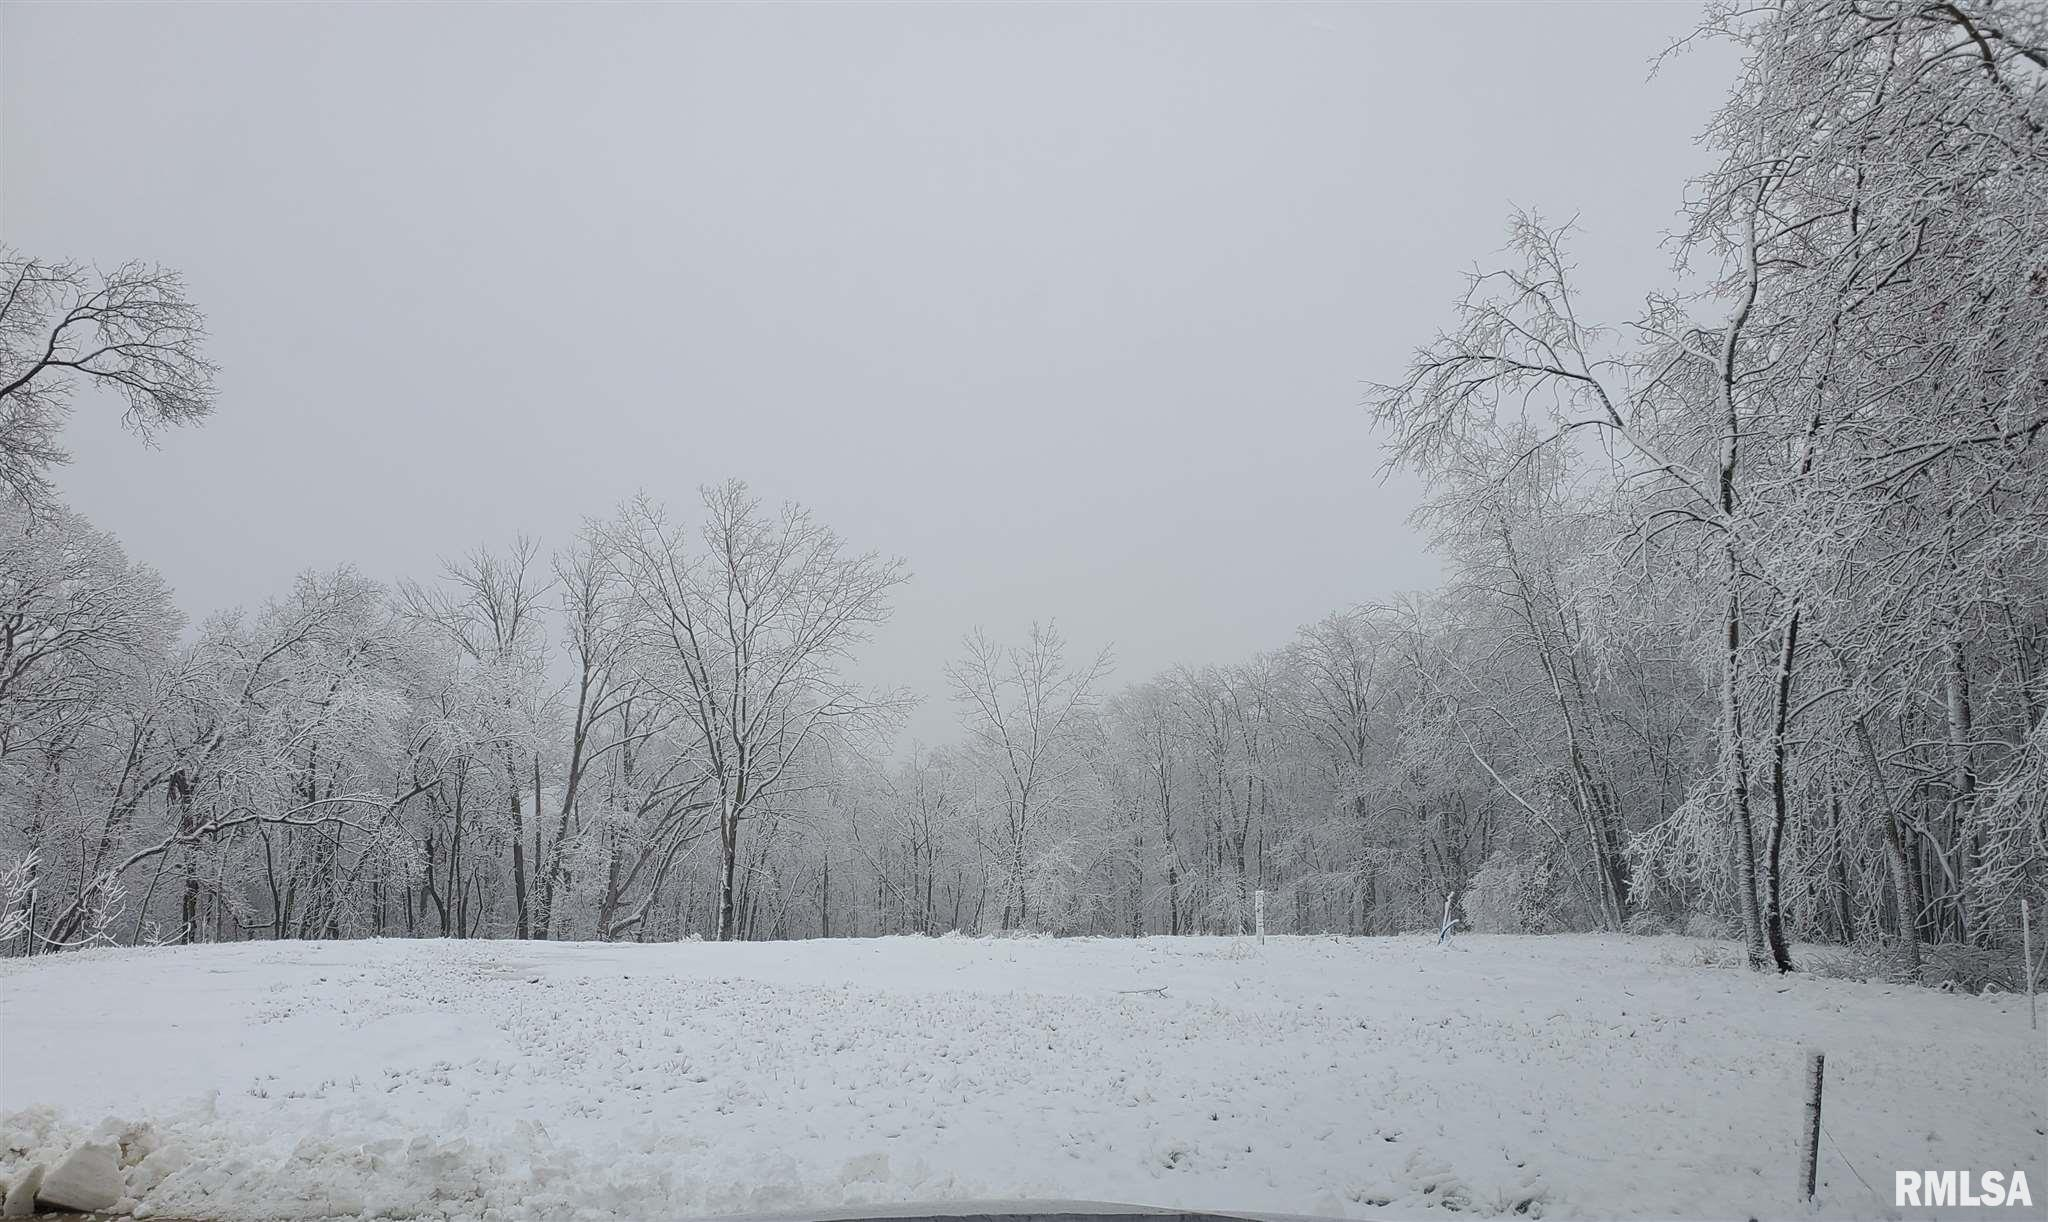 120 ROSEMARY Property Photo - Germantown Hills, IL real estate listing